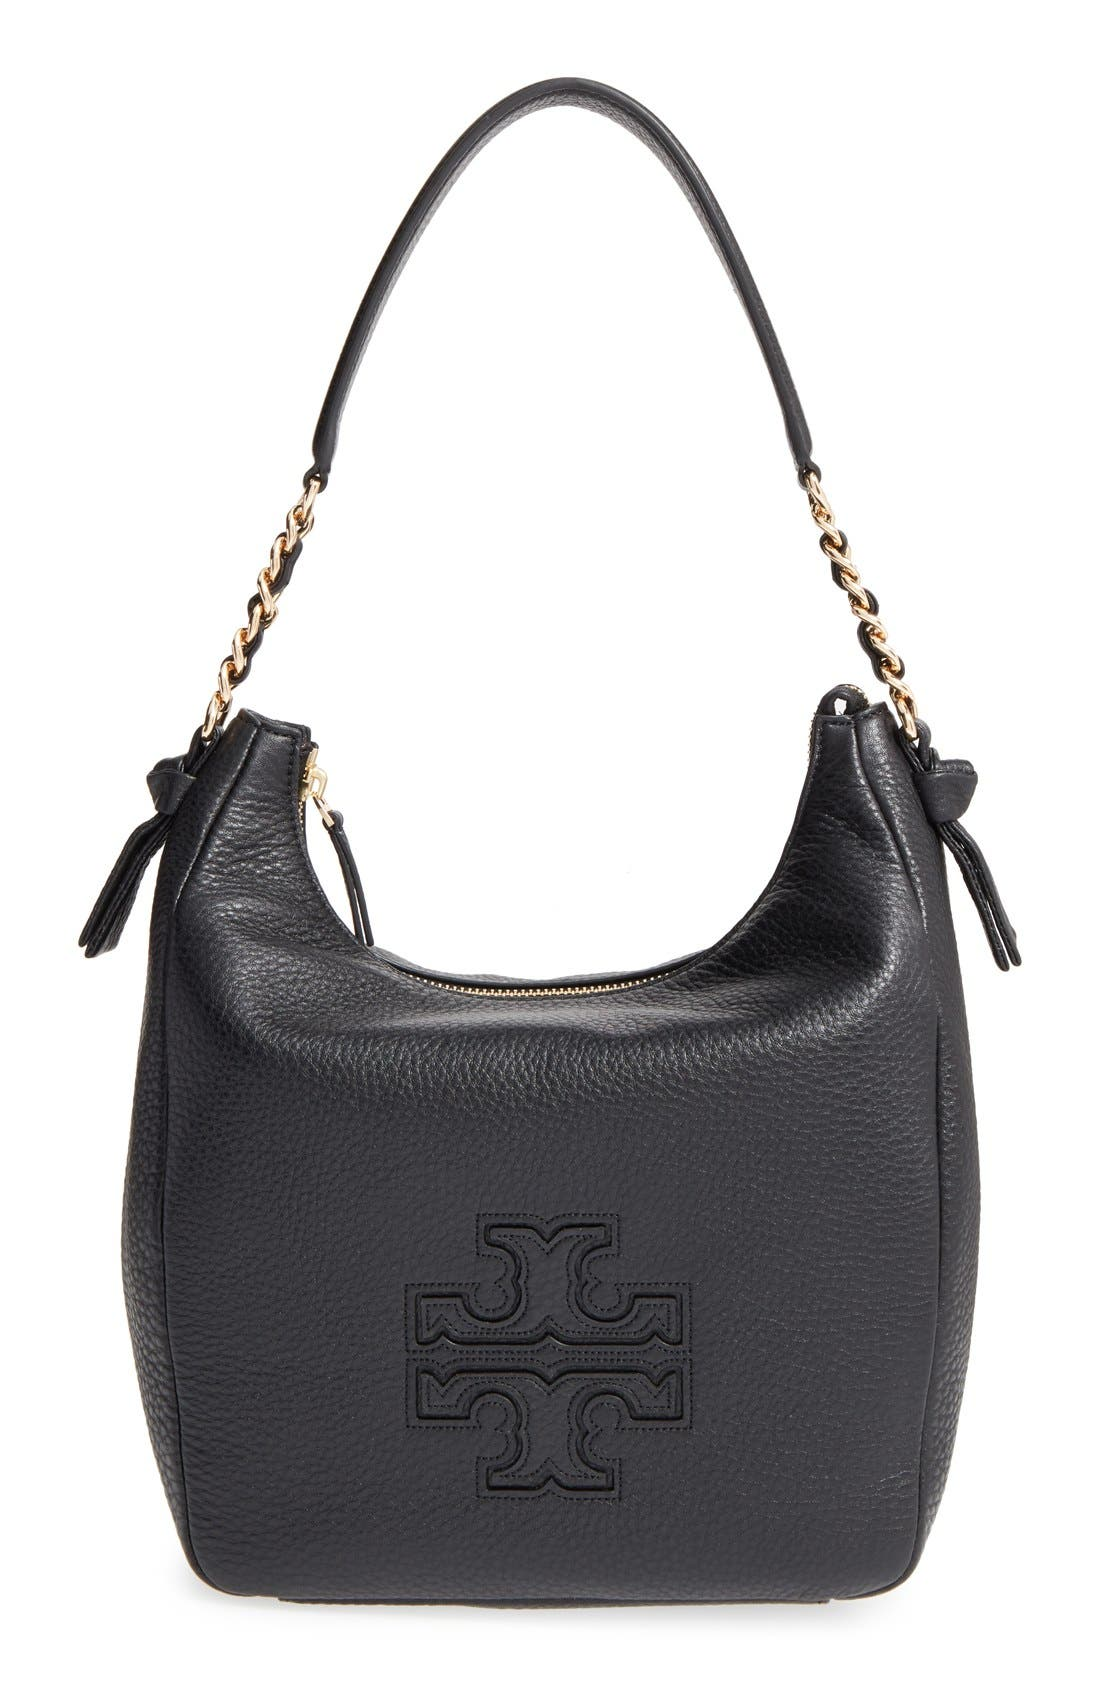 Alternate Image 1 Selected - Tory Burch 'Harper' Leather Zip Hobo